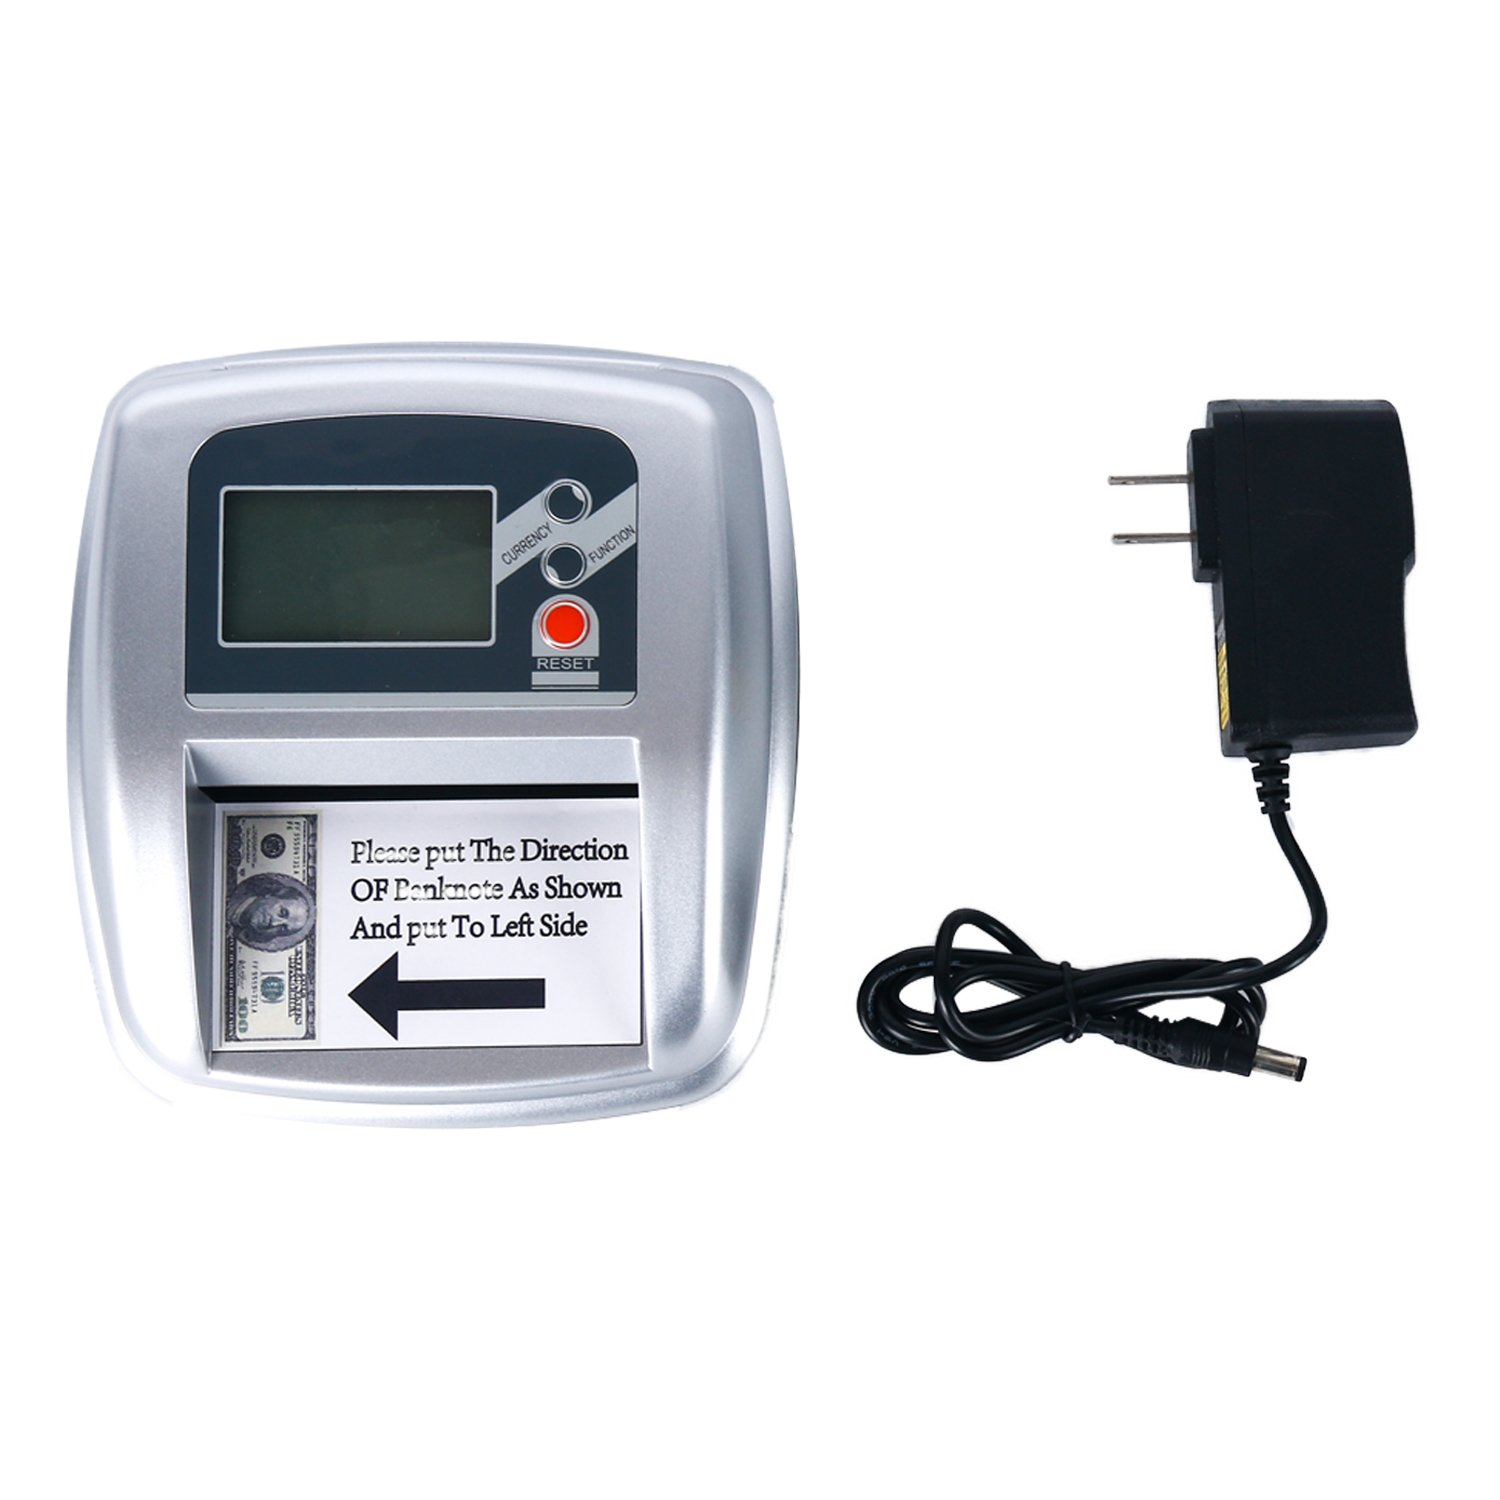 Yaegoo 2-in-1 Counterfeit Money Detector and Bill Counter with UV, MG and IR Detection